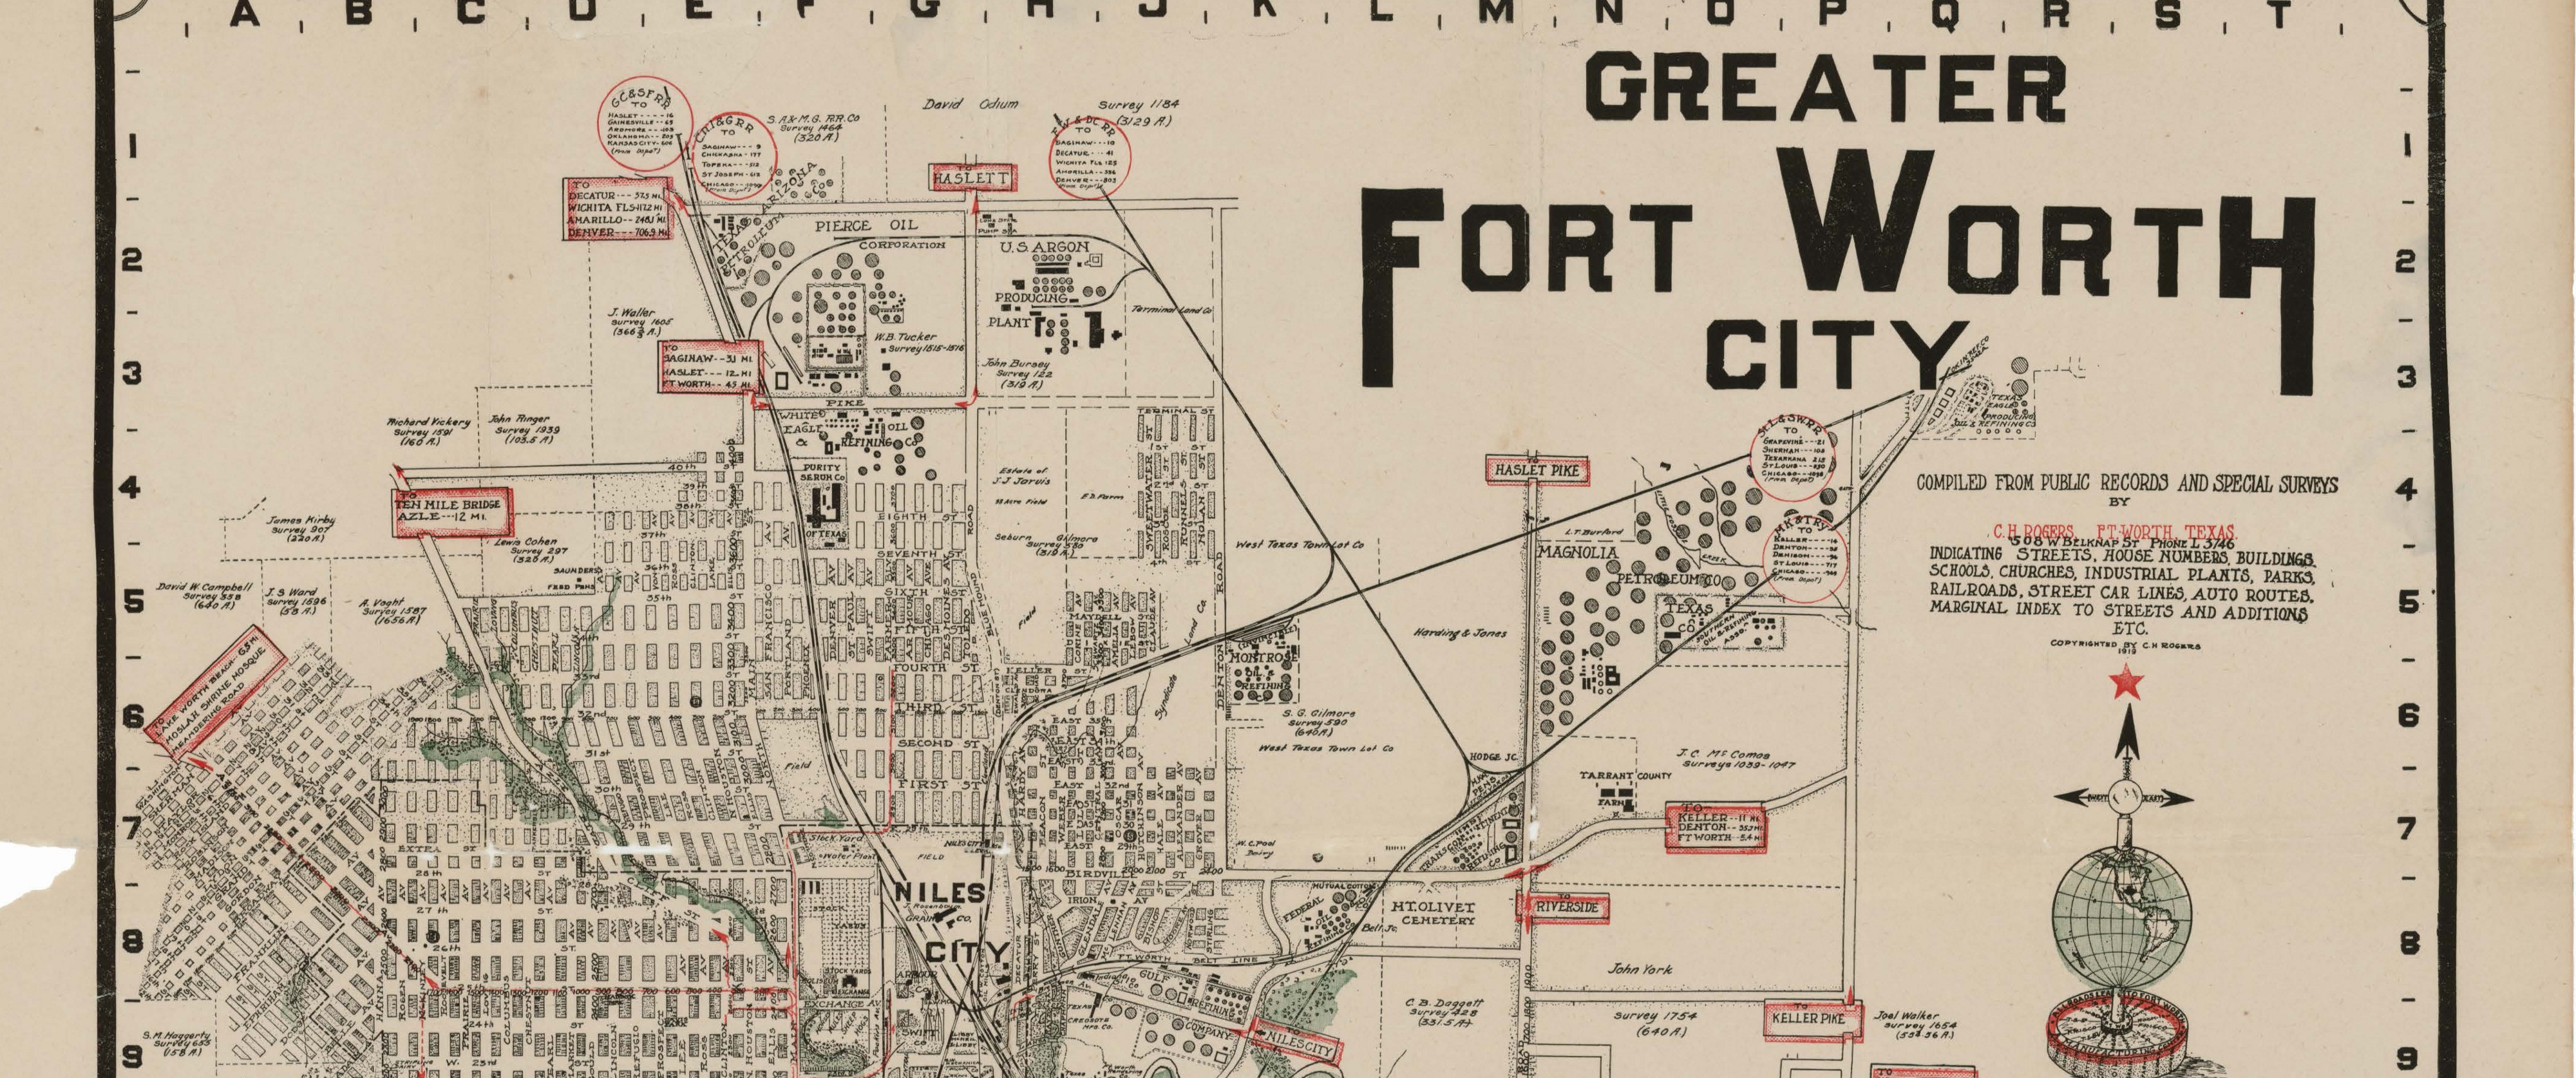 Greater Fort Worth City, 1919 - Save Texas History - Medium